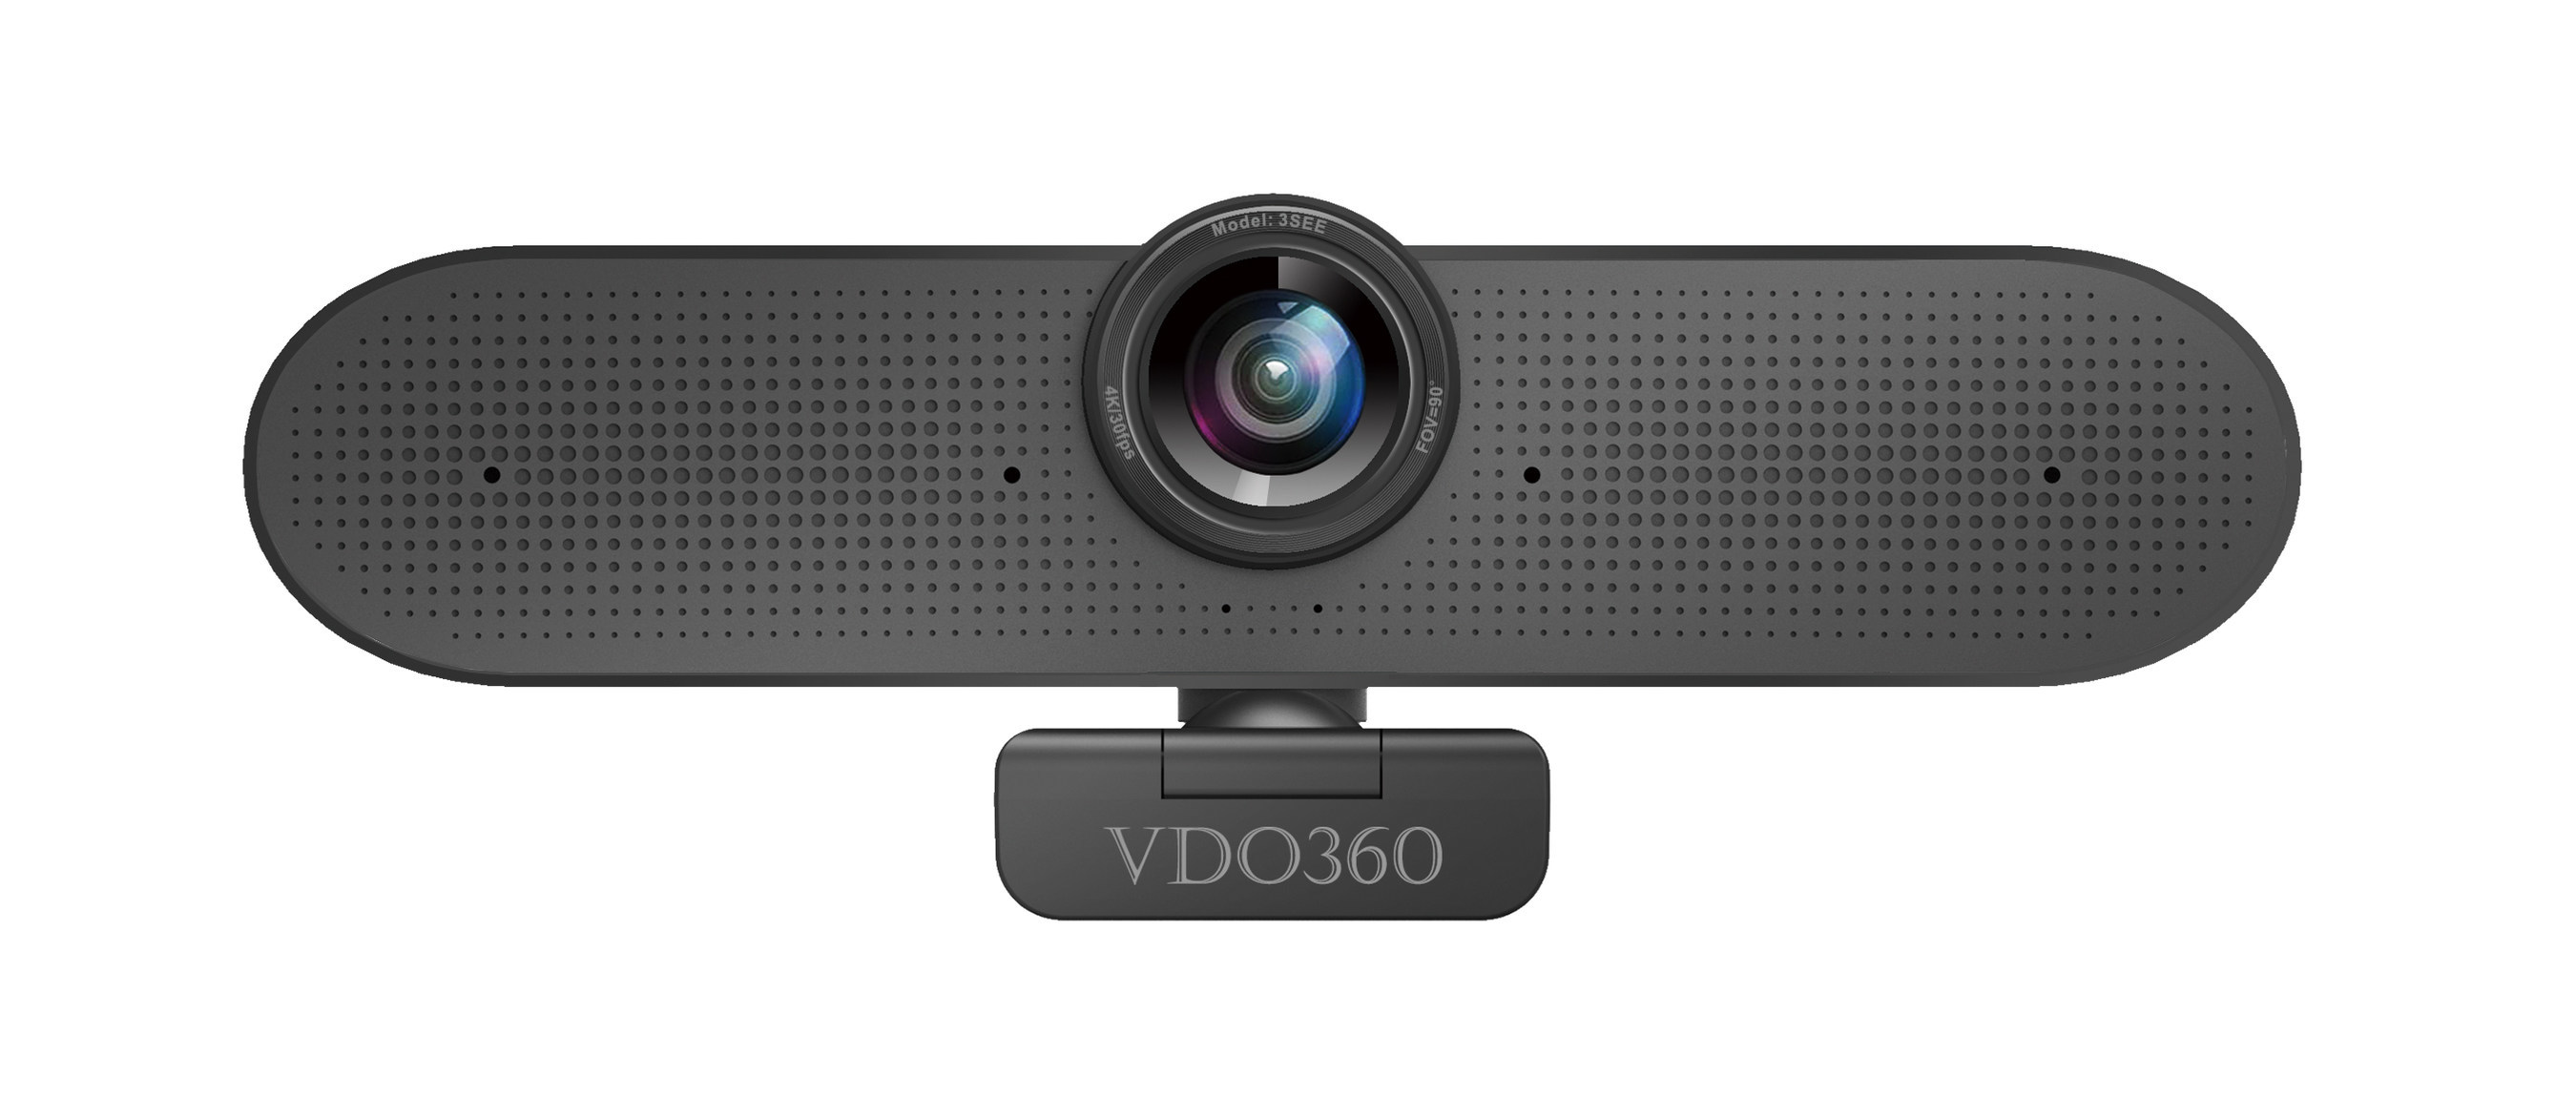 VDO360 Announces 3SEE 4K USB Webcam With Built-in Microphone Array and Speakers